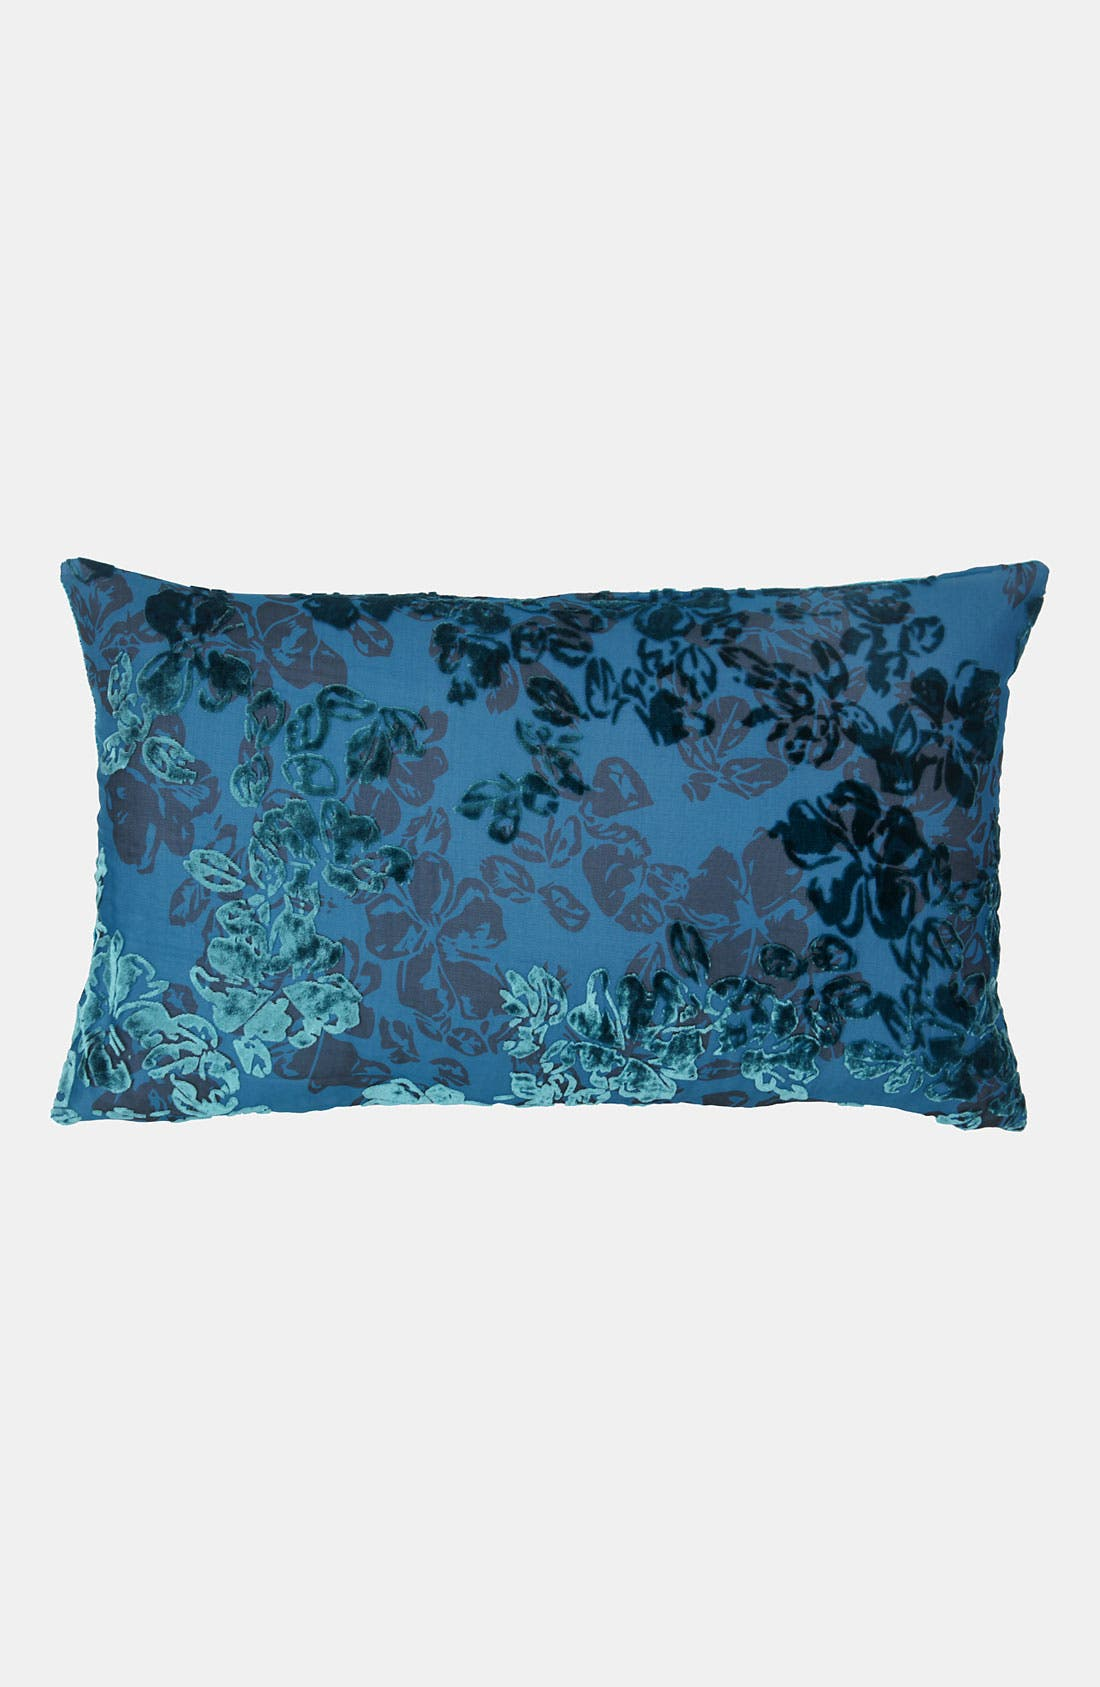 Alternate Image 1 Selected - Blissliving Home 'Anastasia' Oblong Pillow (Online Only)